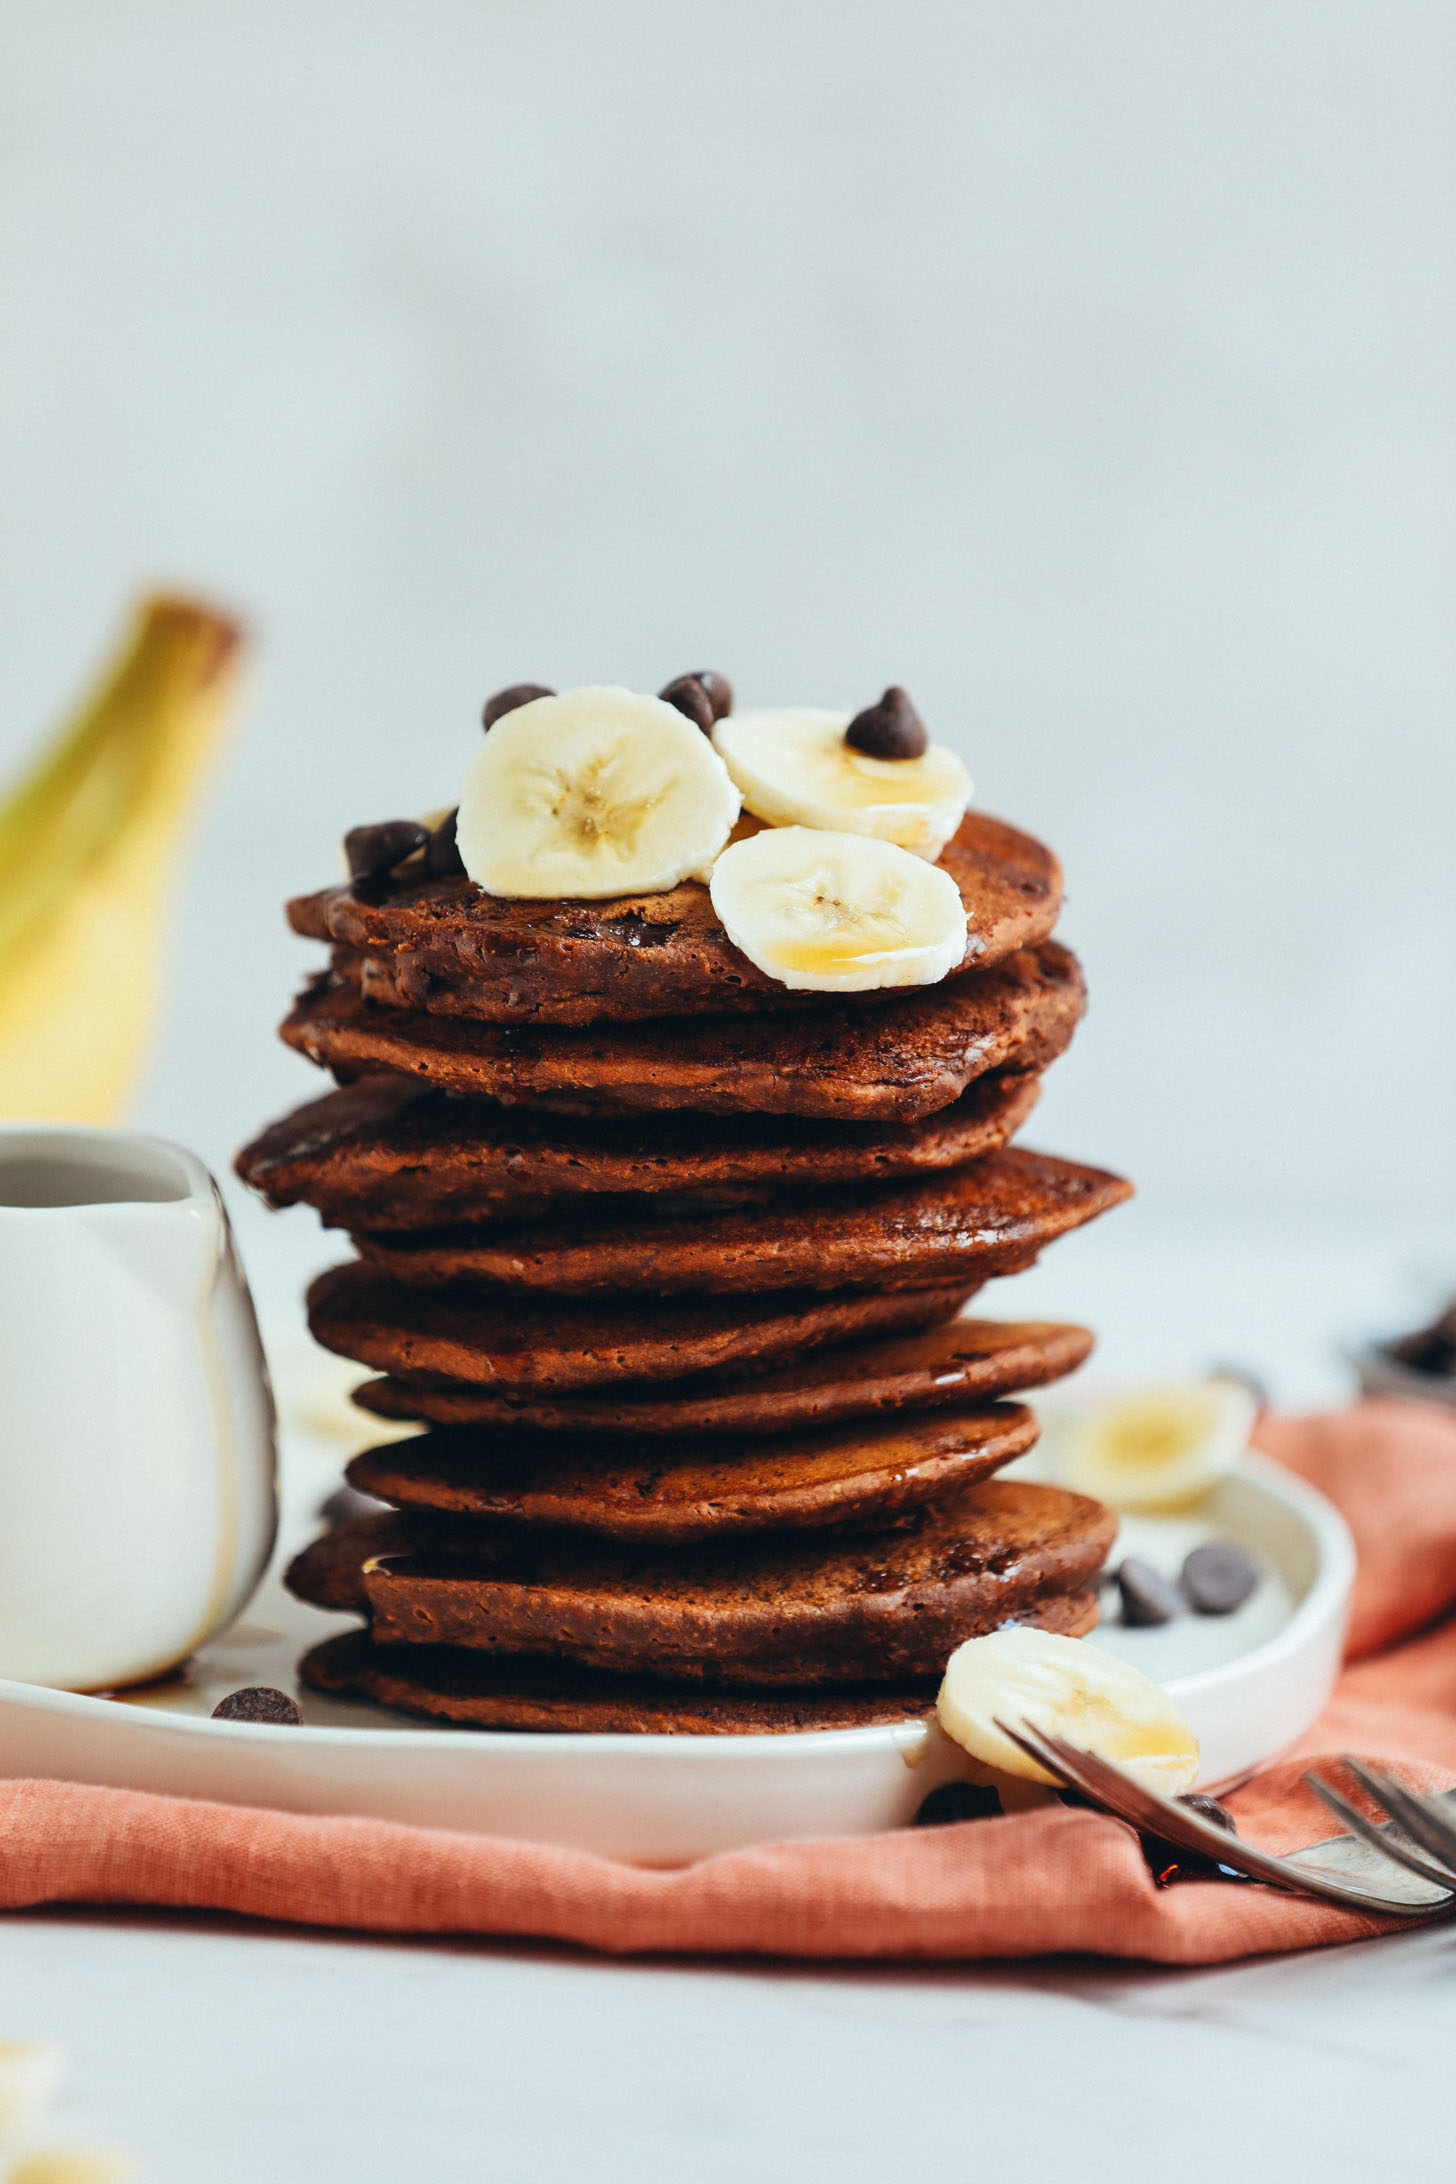 Stack of Vegan Chocolate Chocolate Chip Pancakes